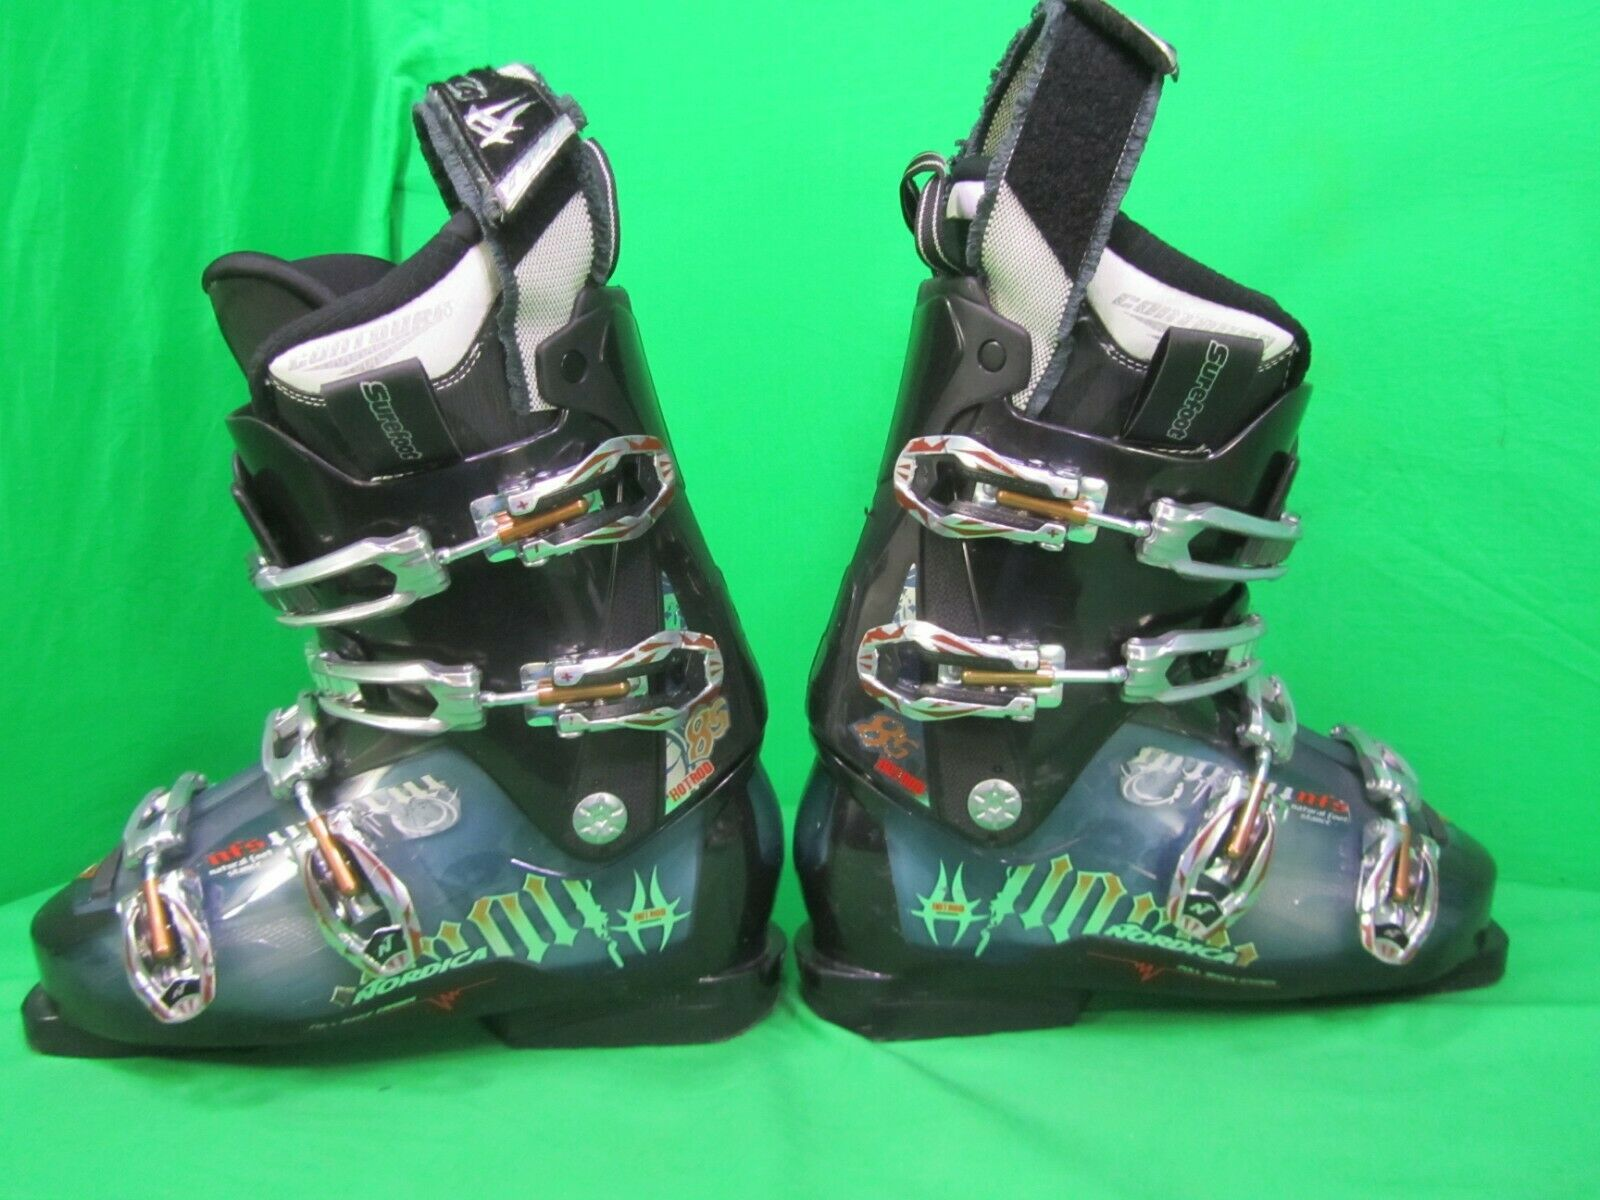 NORDICA HOT ROD 85 SKI BOOTS SIZE US 7.5 Power Of Neutral Inserts